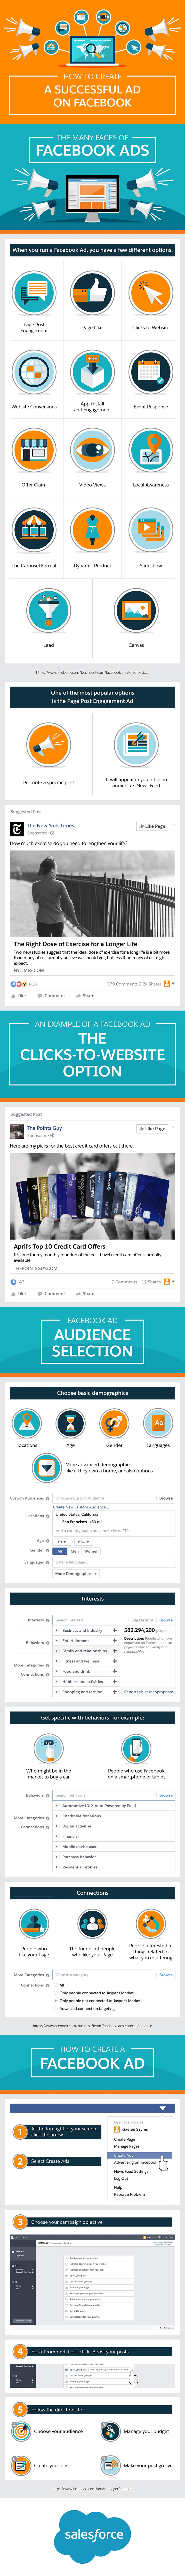 How-to-Create-a-Successful-Ad-on-Facebook